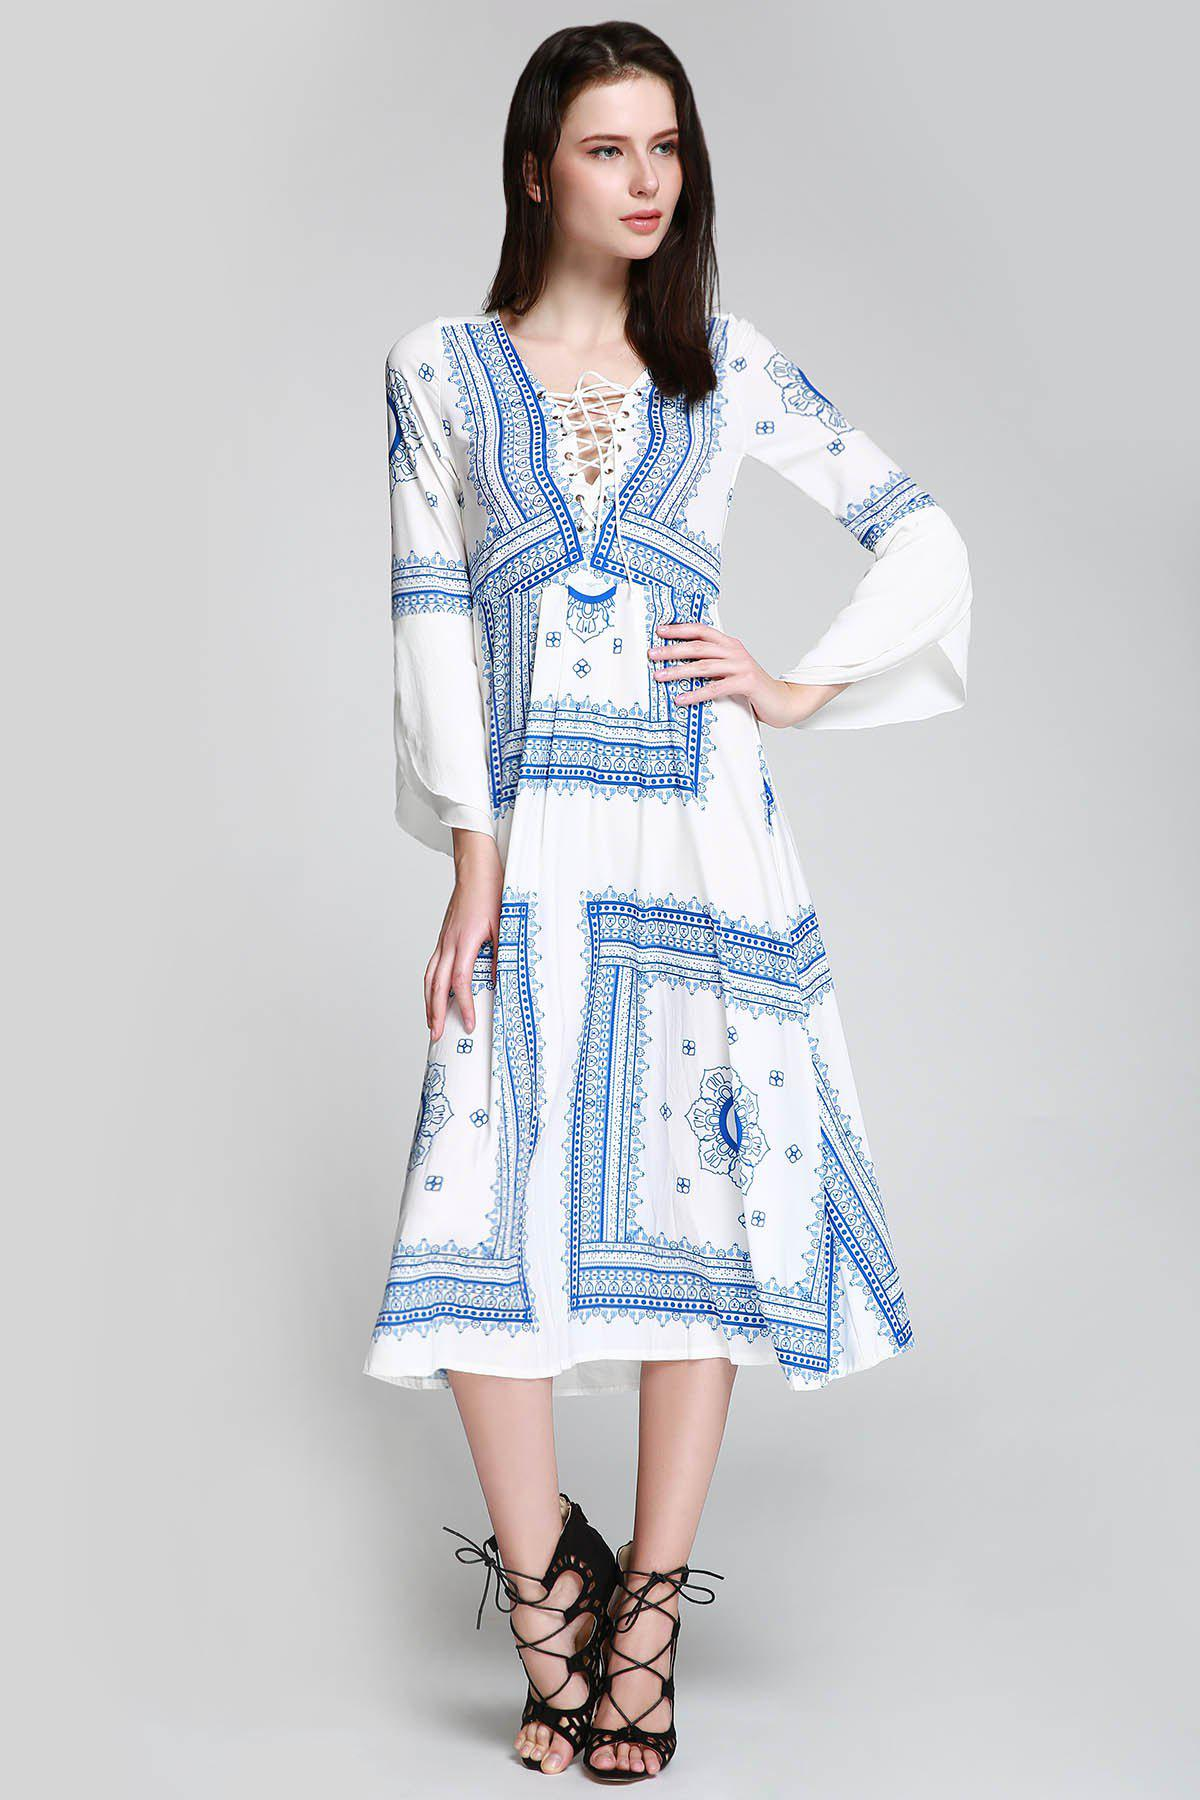 Store Long Sleeve Printed Romantic Boho Swing Beach Dress